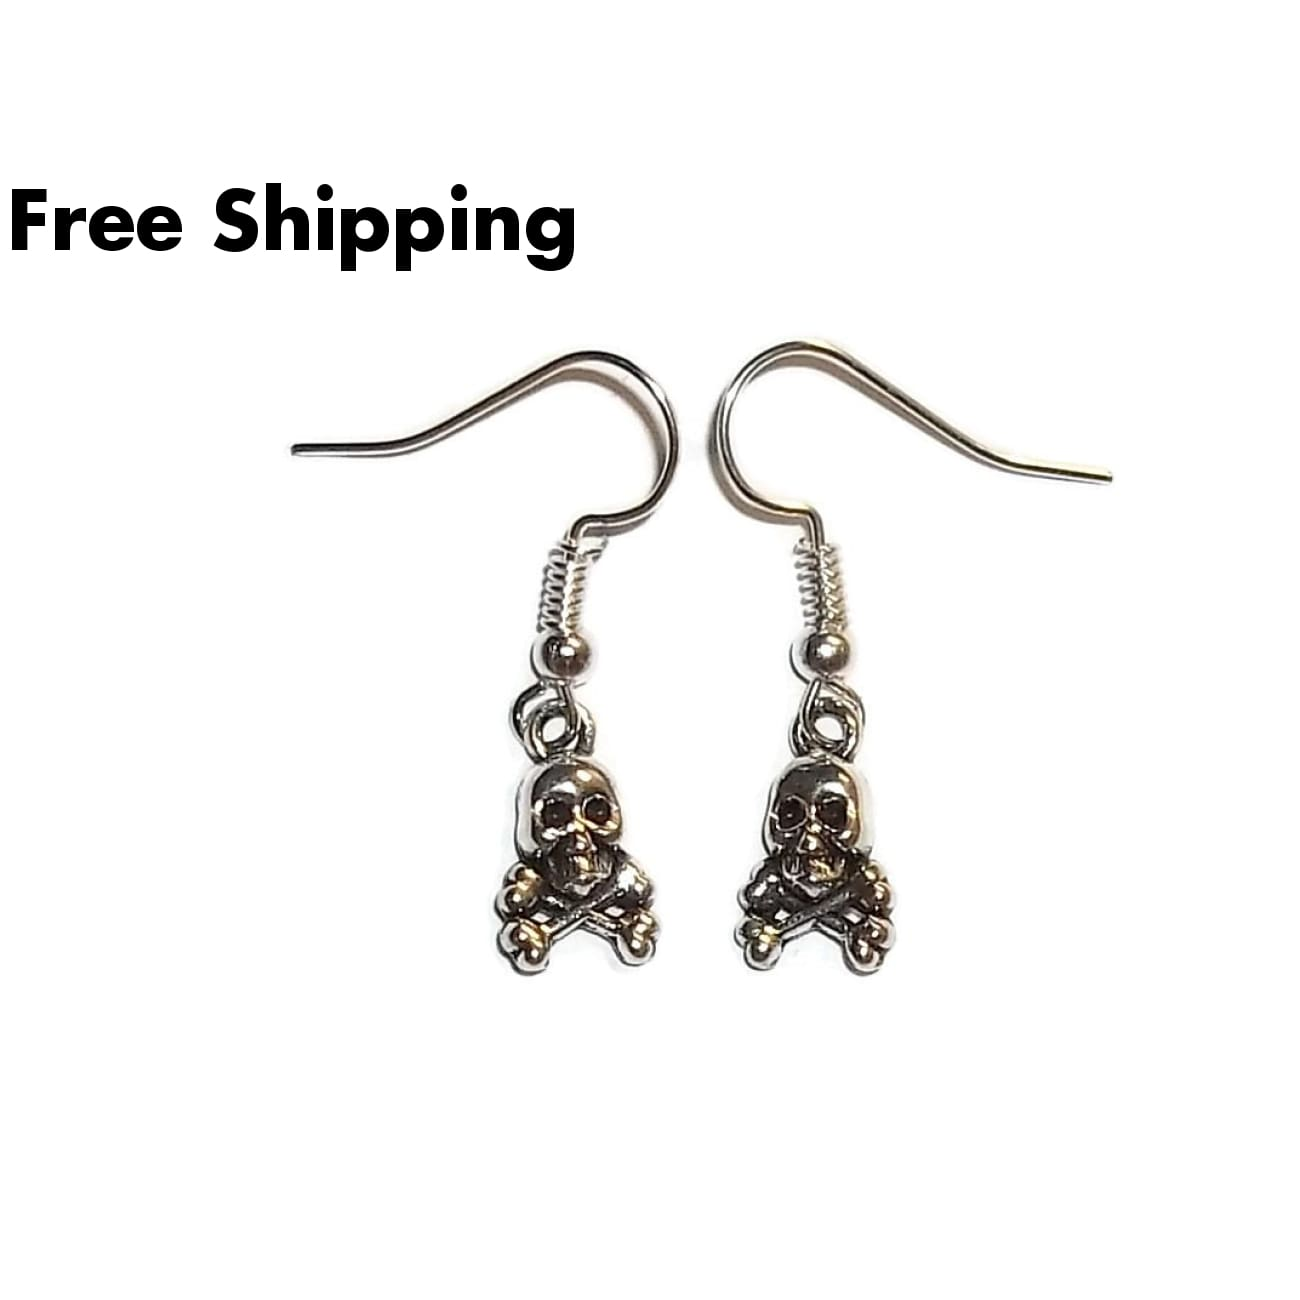 Skull & Crossbones Tibetan Silver Drop Dangle Hand Crafted Earrings - Earrings